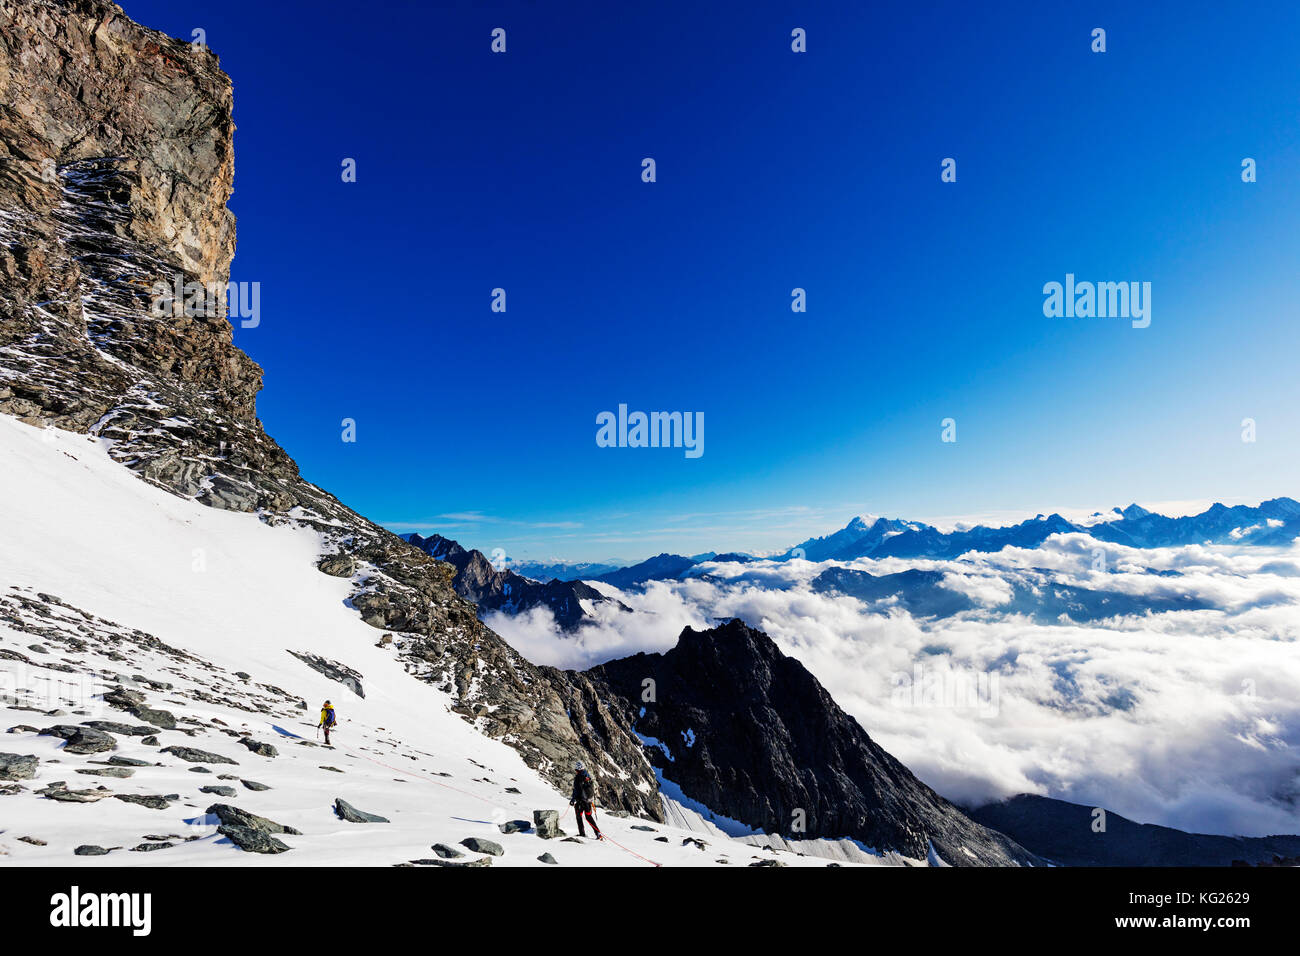 View to Mont Blanc in France from Grand Combin, Valais, Swiss Alps, Switzerland, Europe - Stock Image